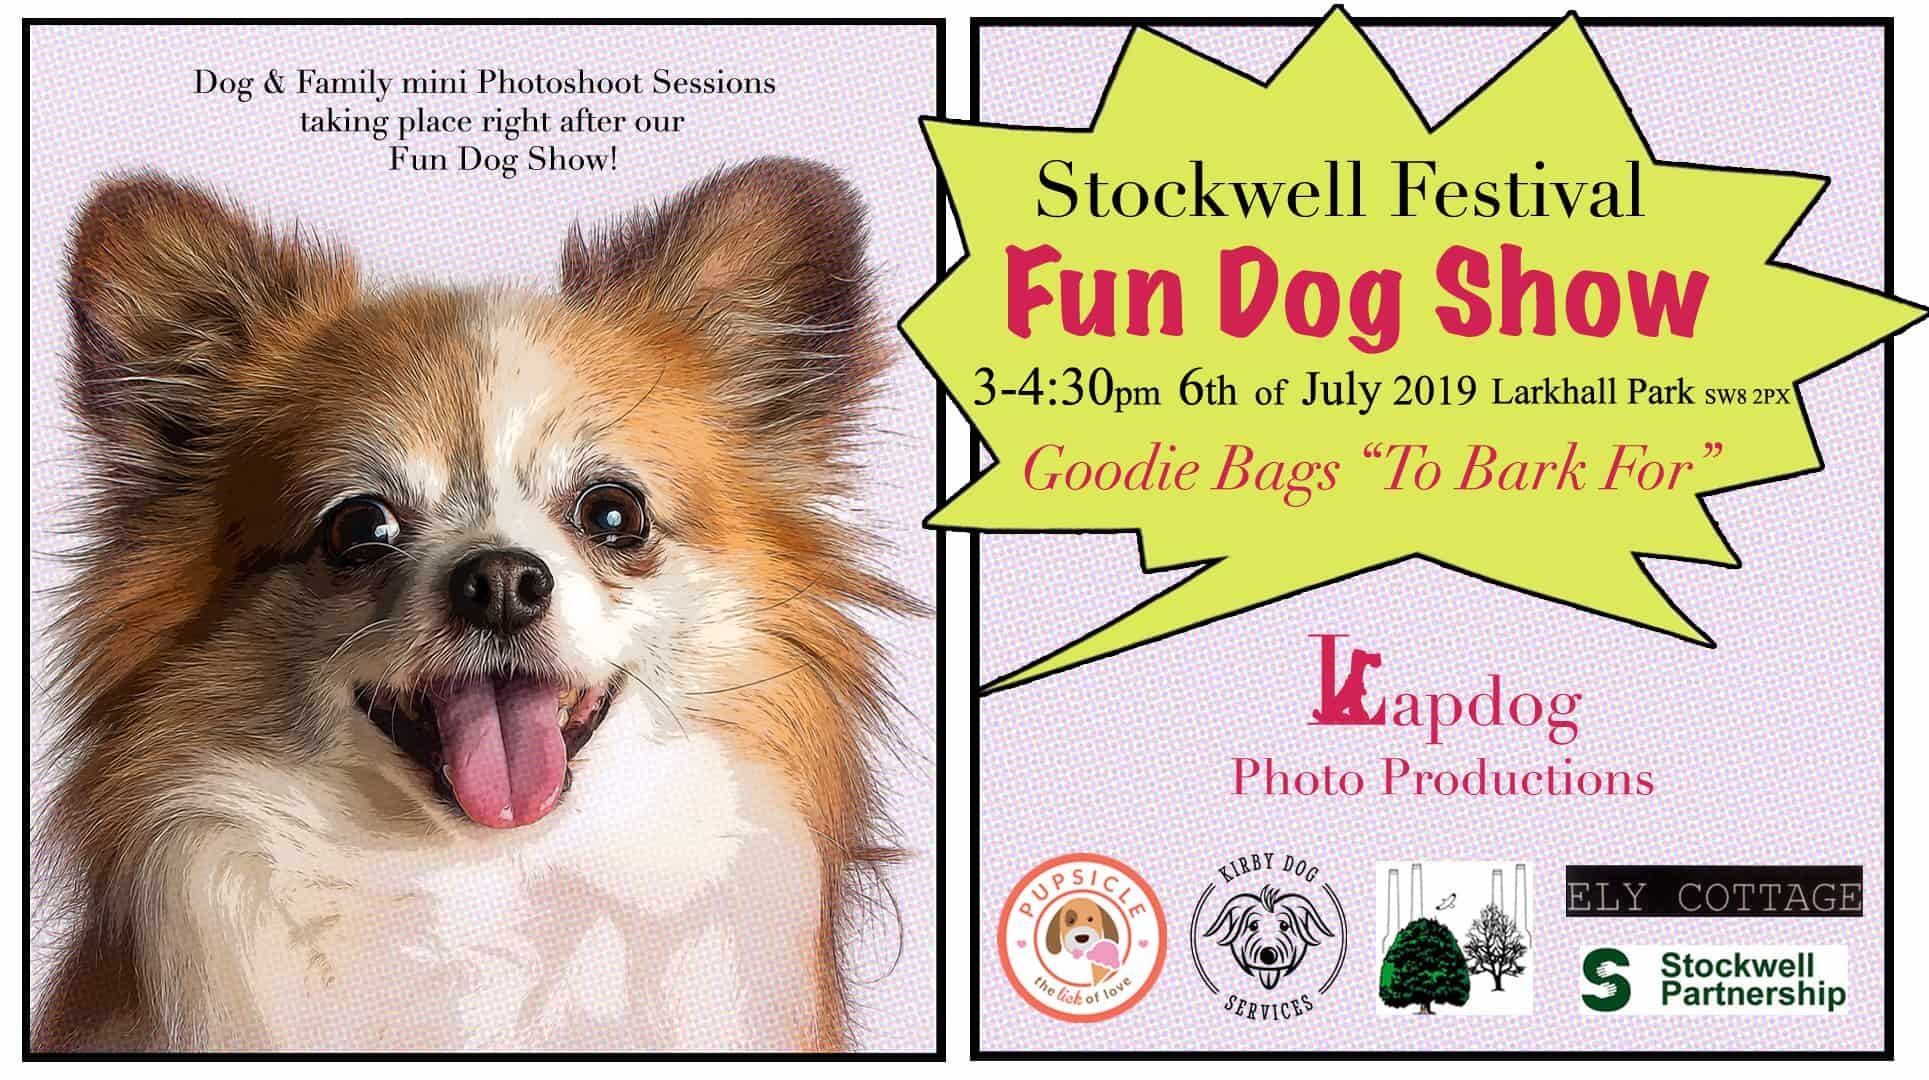 Stockwell Festival Fun Dog Show